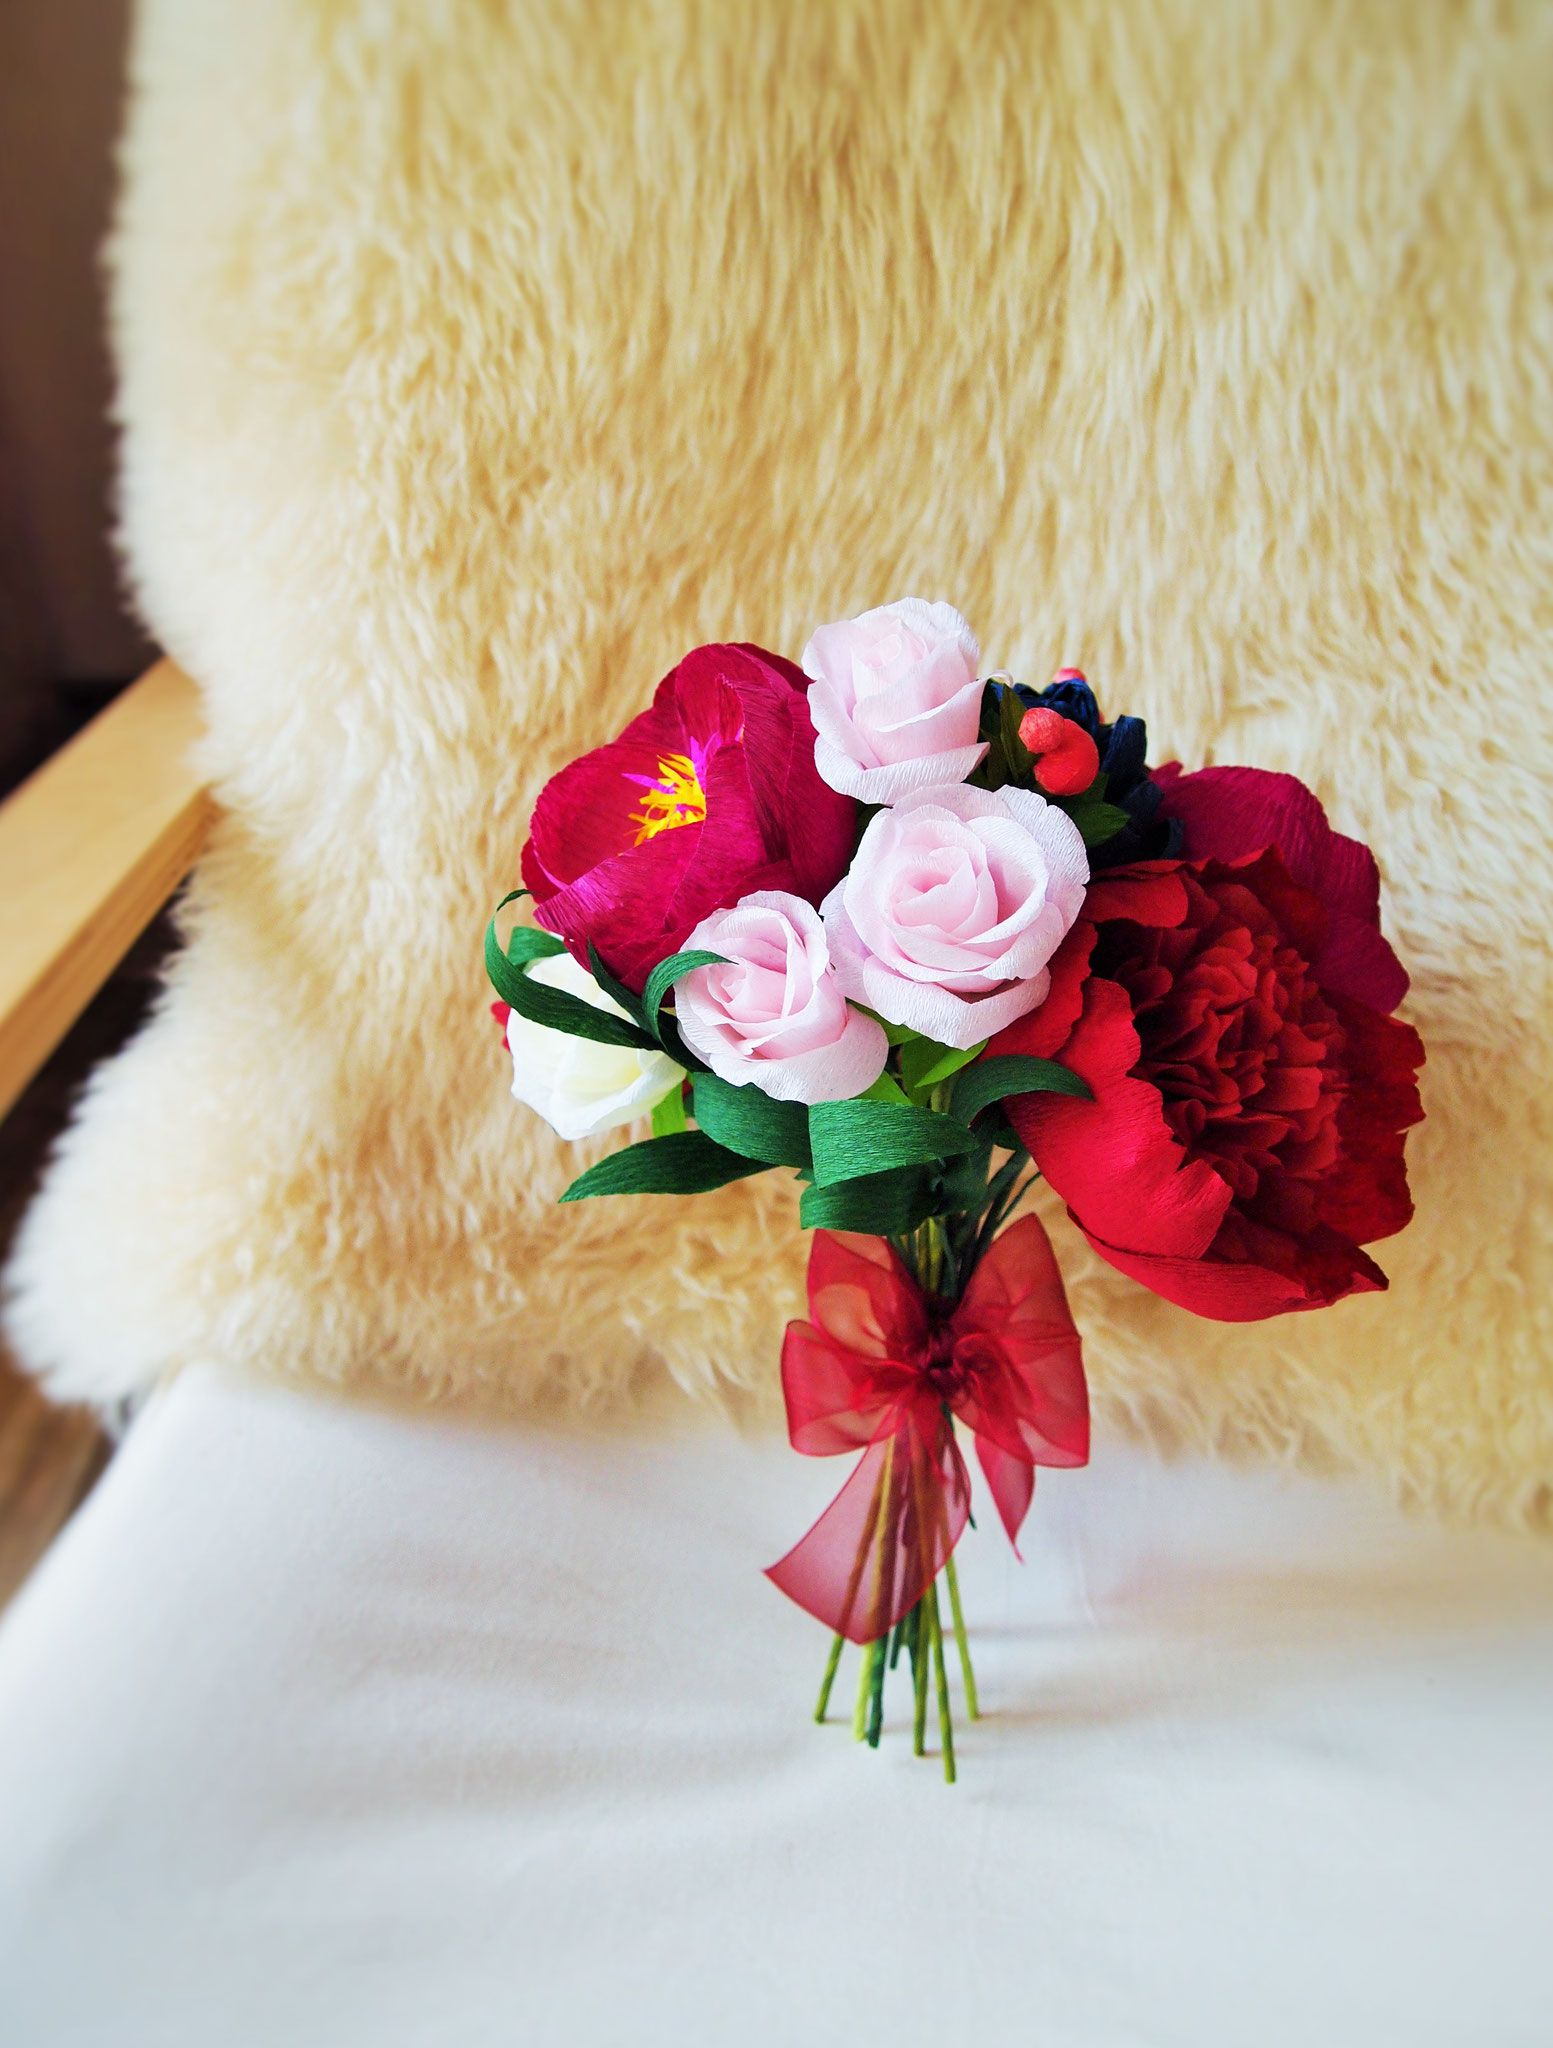 EtsyShop: wedding crepe paper flower bridal bouquet in red and pink tones − handmade by Ameli's Lovely Creations (available on Etsy)